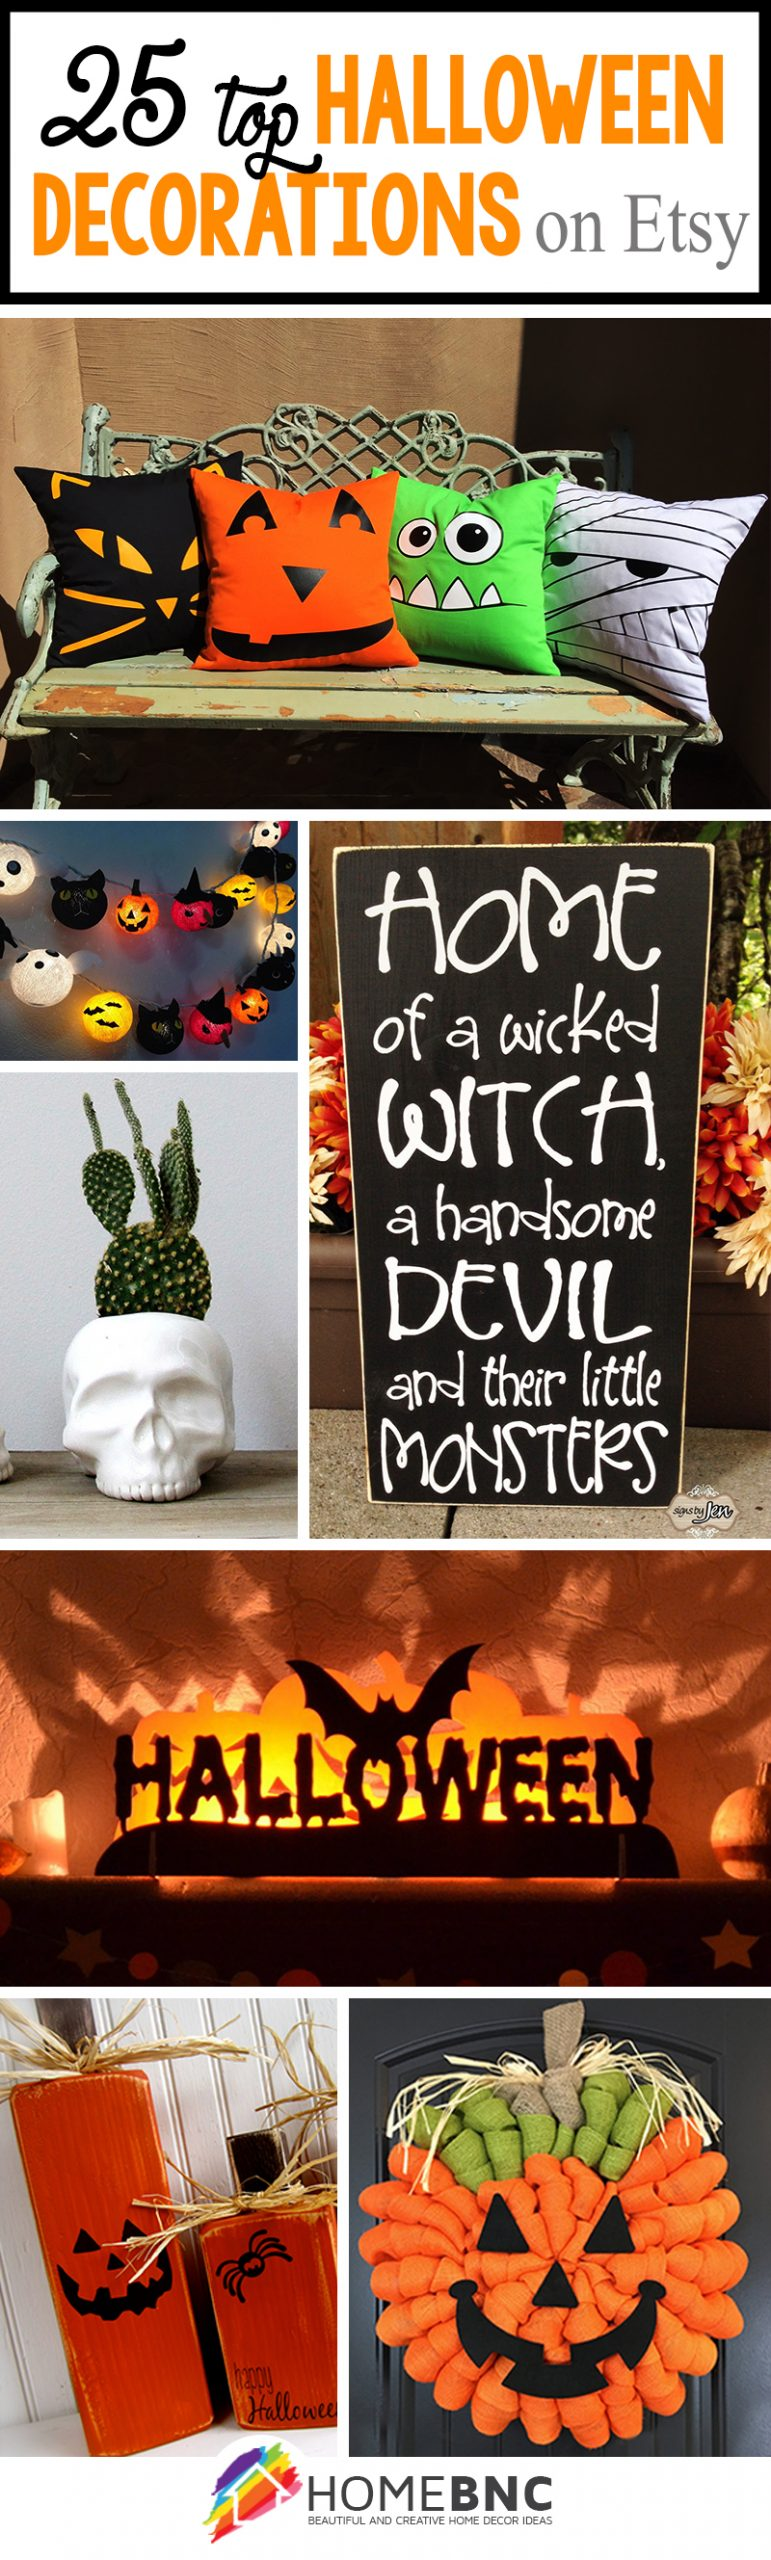 Halloween Décor Ideas